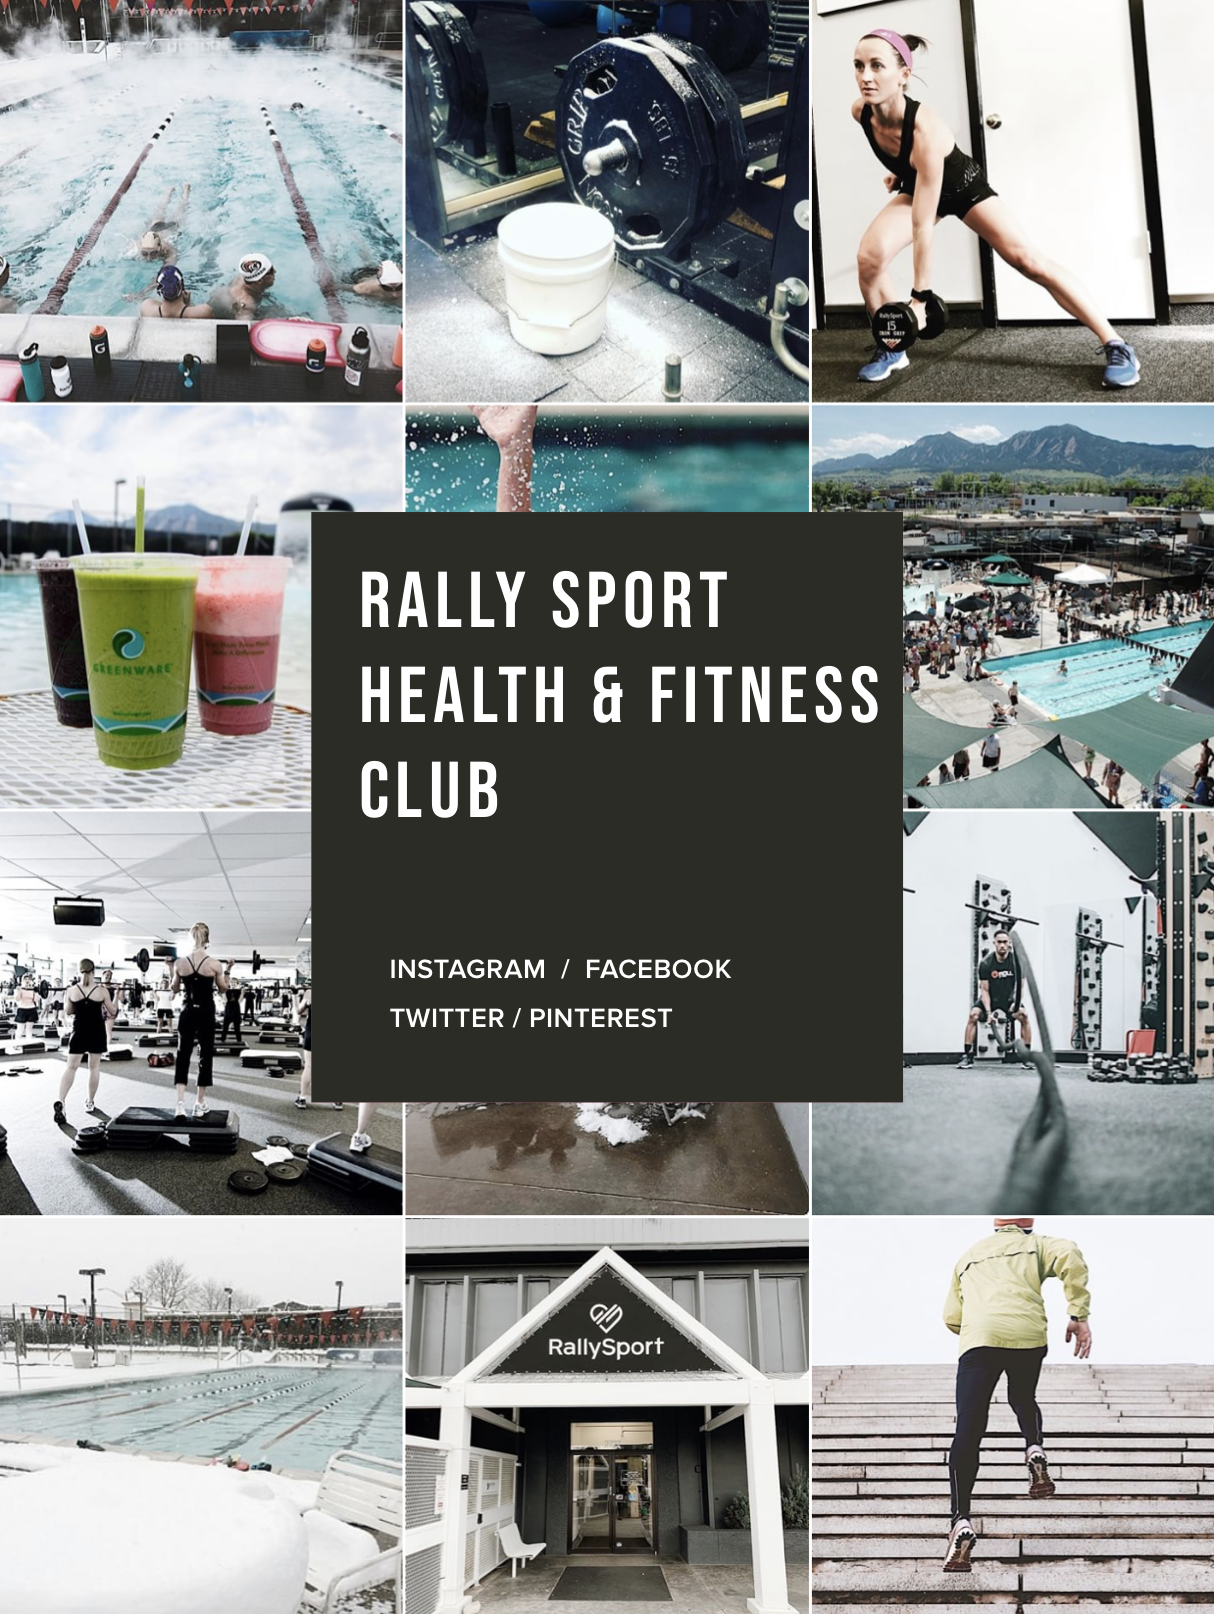 RALLY SPORT HEALTH & FITNESS CLUB